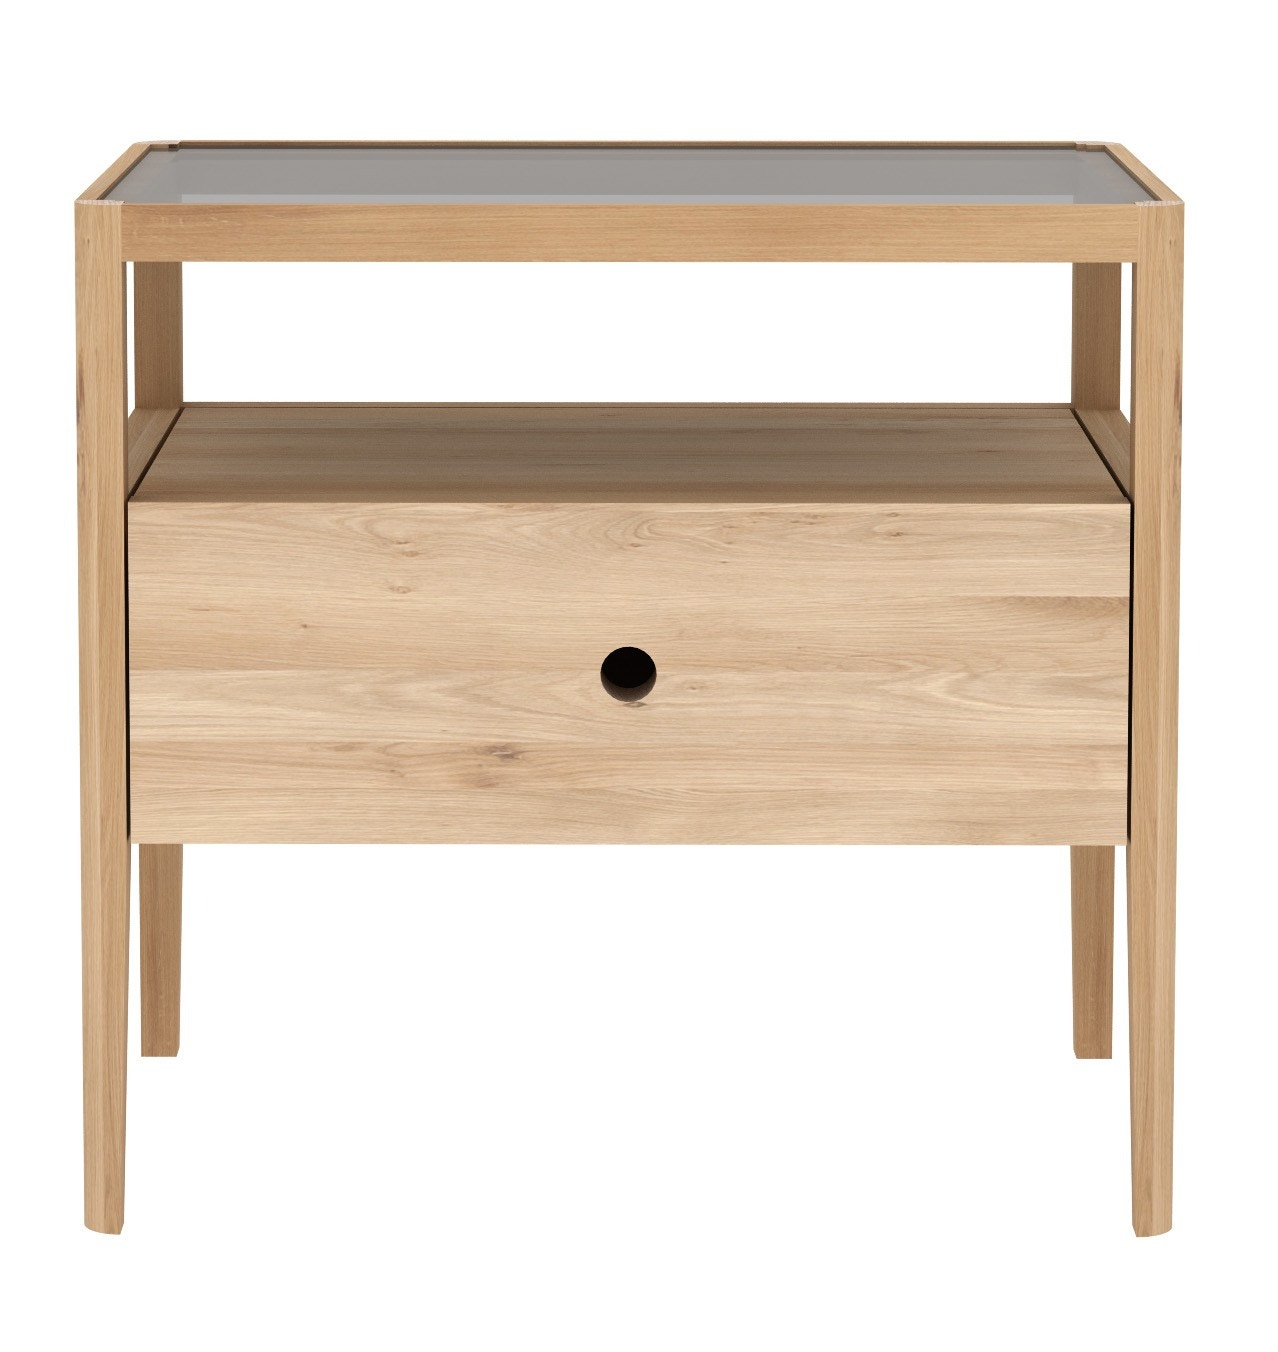 Ethnicraft Spindle Bedside Table with 1 Drawer